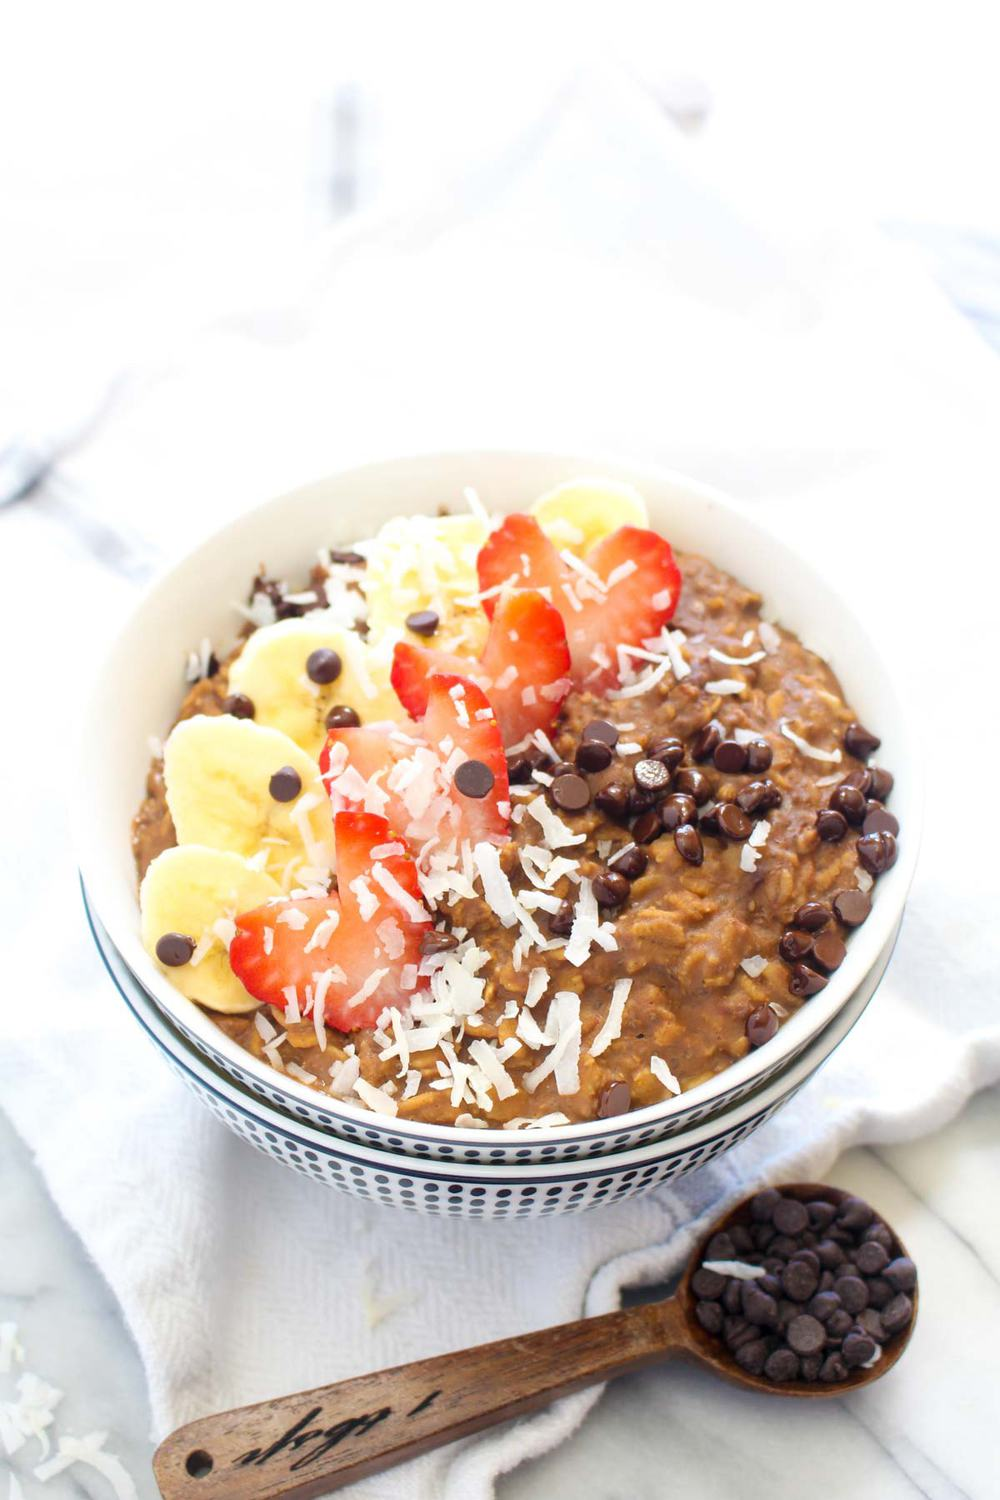 Chocolate Protein Oatmeal (no protein powder) - Catching Seeds